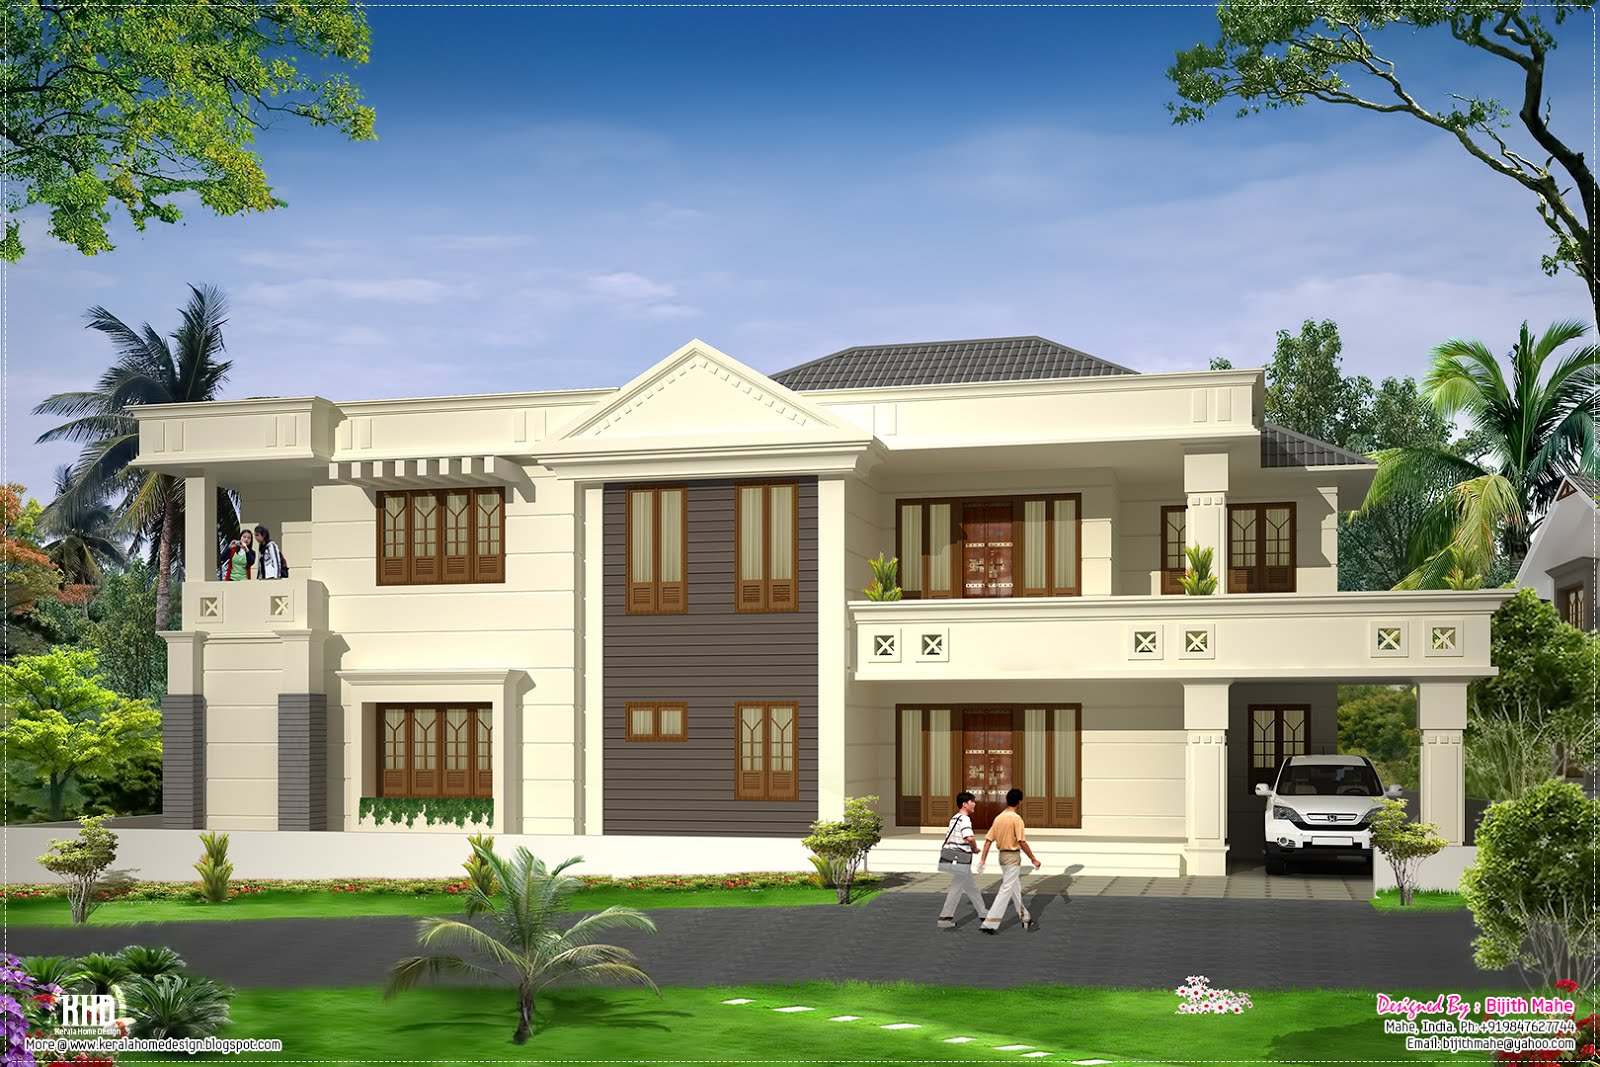 Modern luxury home design kerala home design and floor plans Luxury homes blueprints